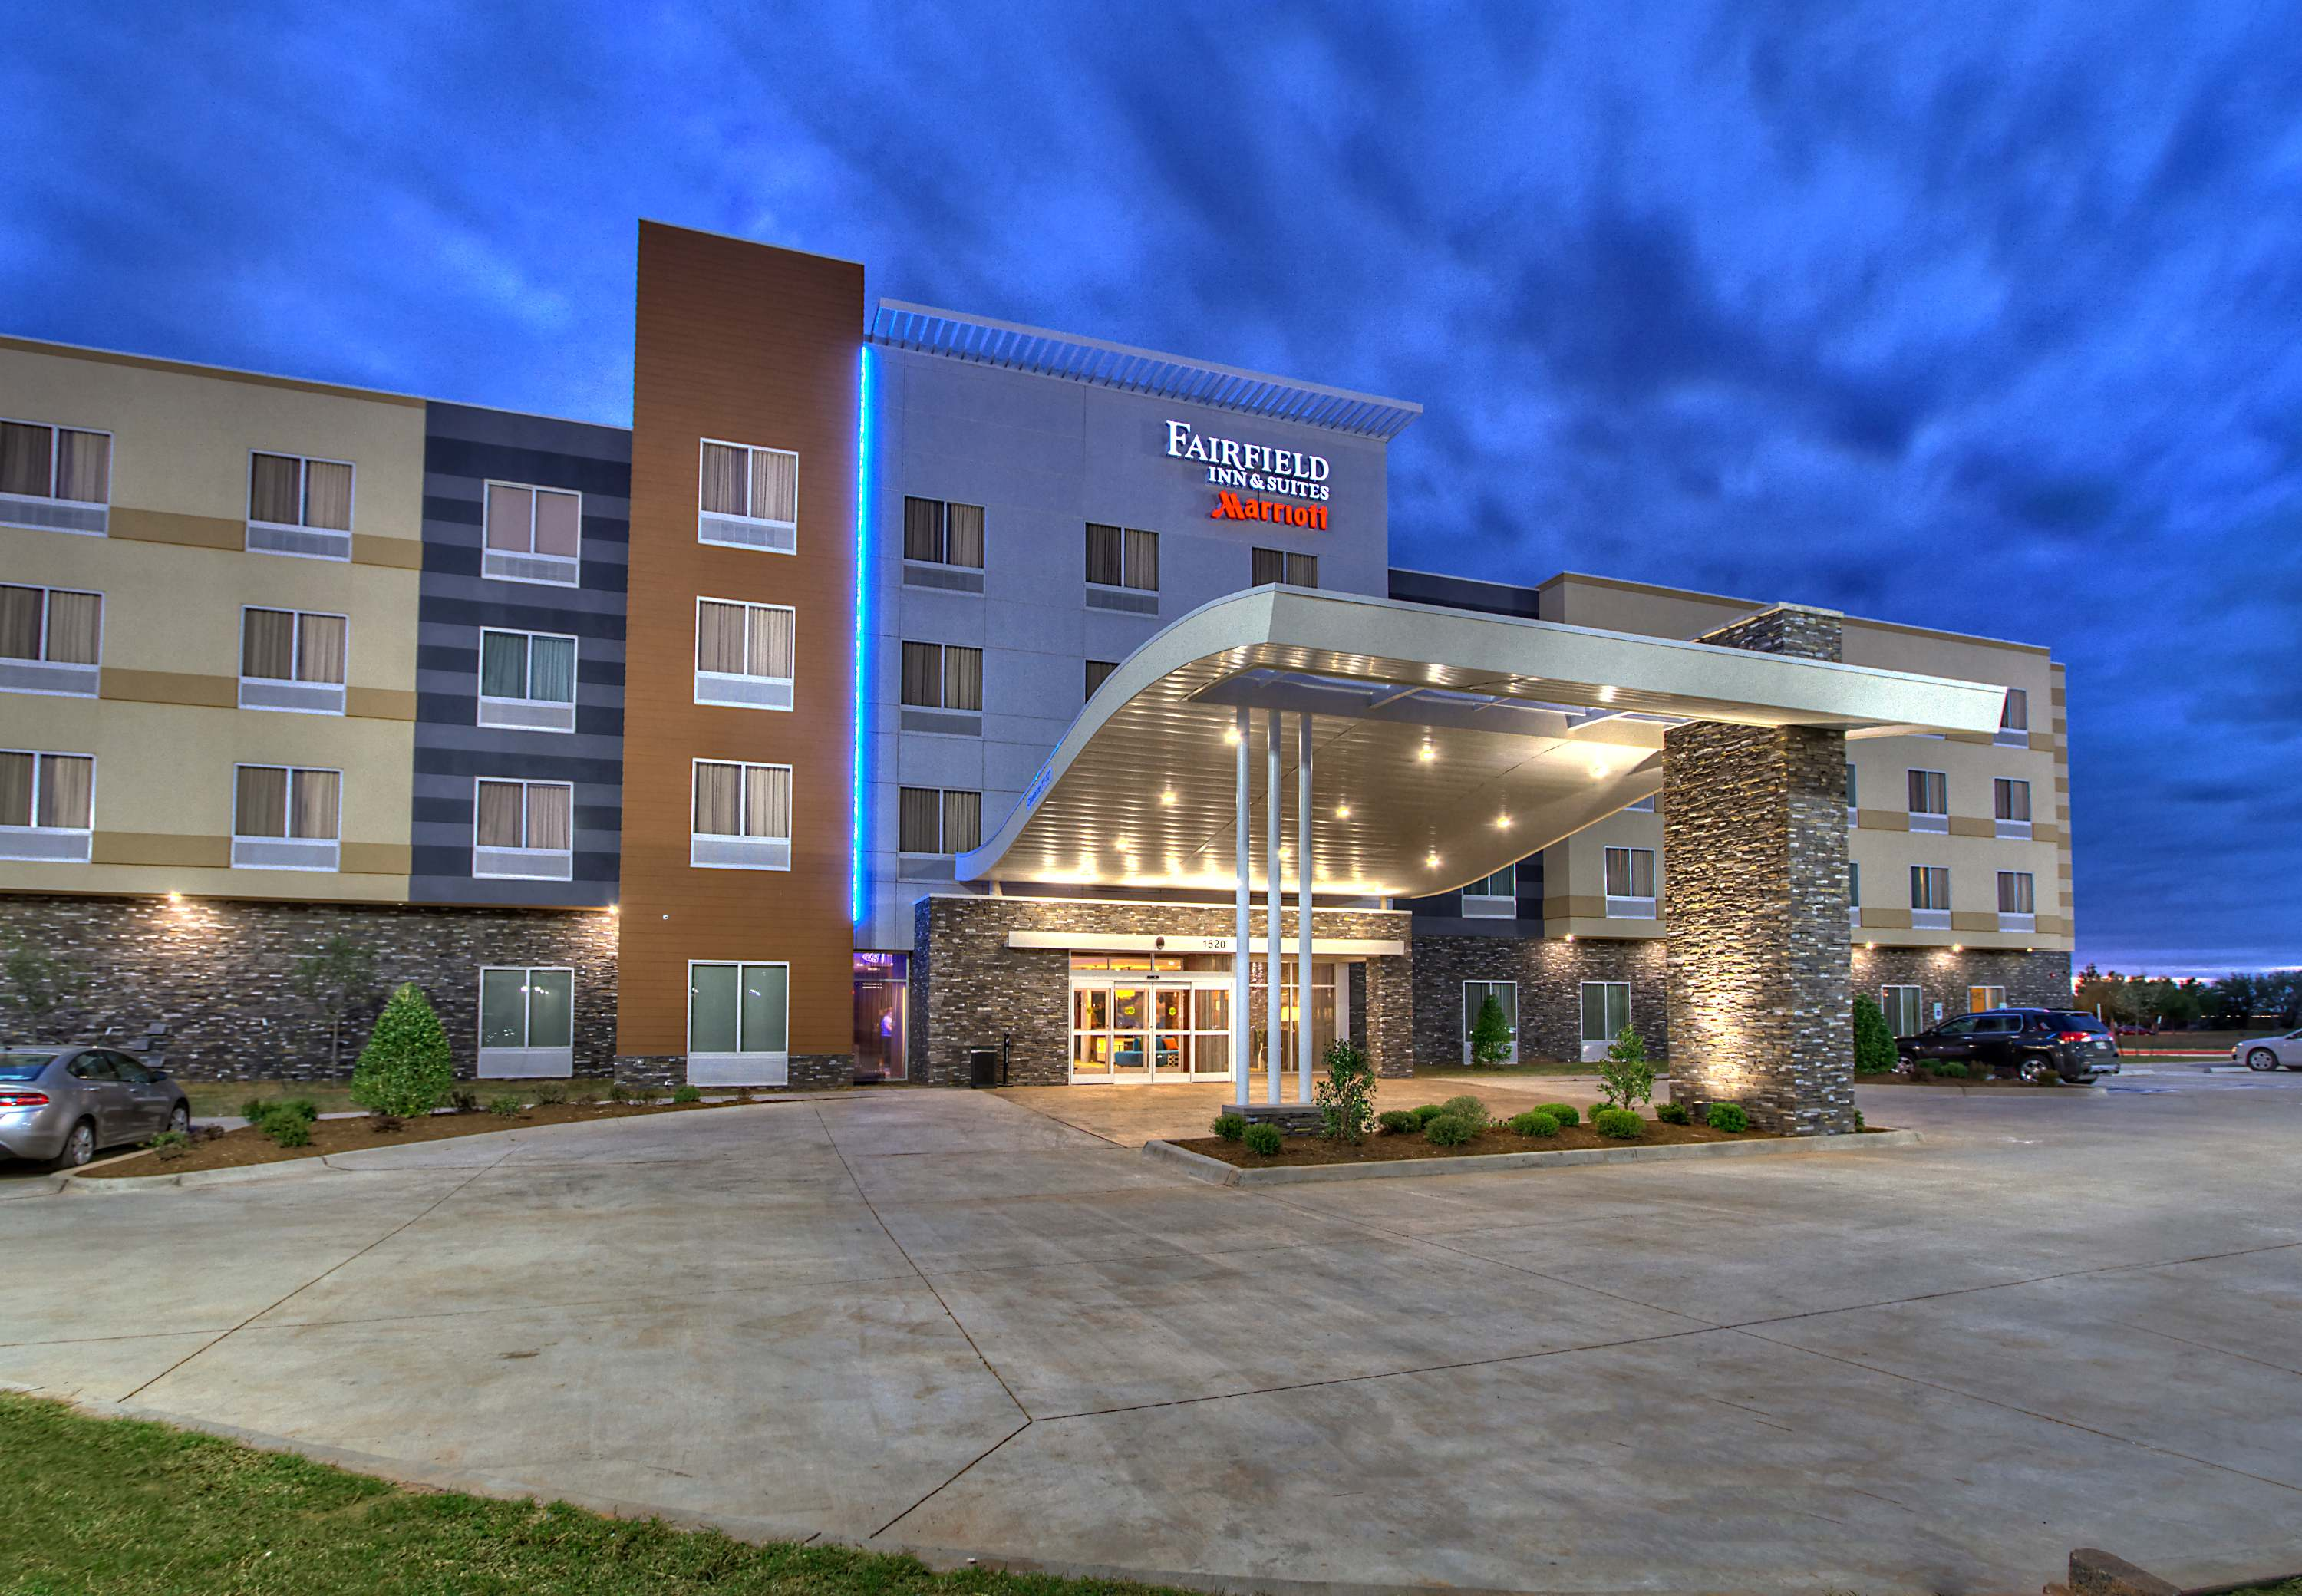 Fairfield inn suites by marriott oklahoma city yukon The fairfield